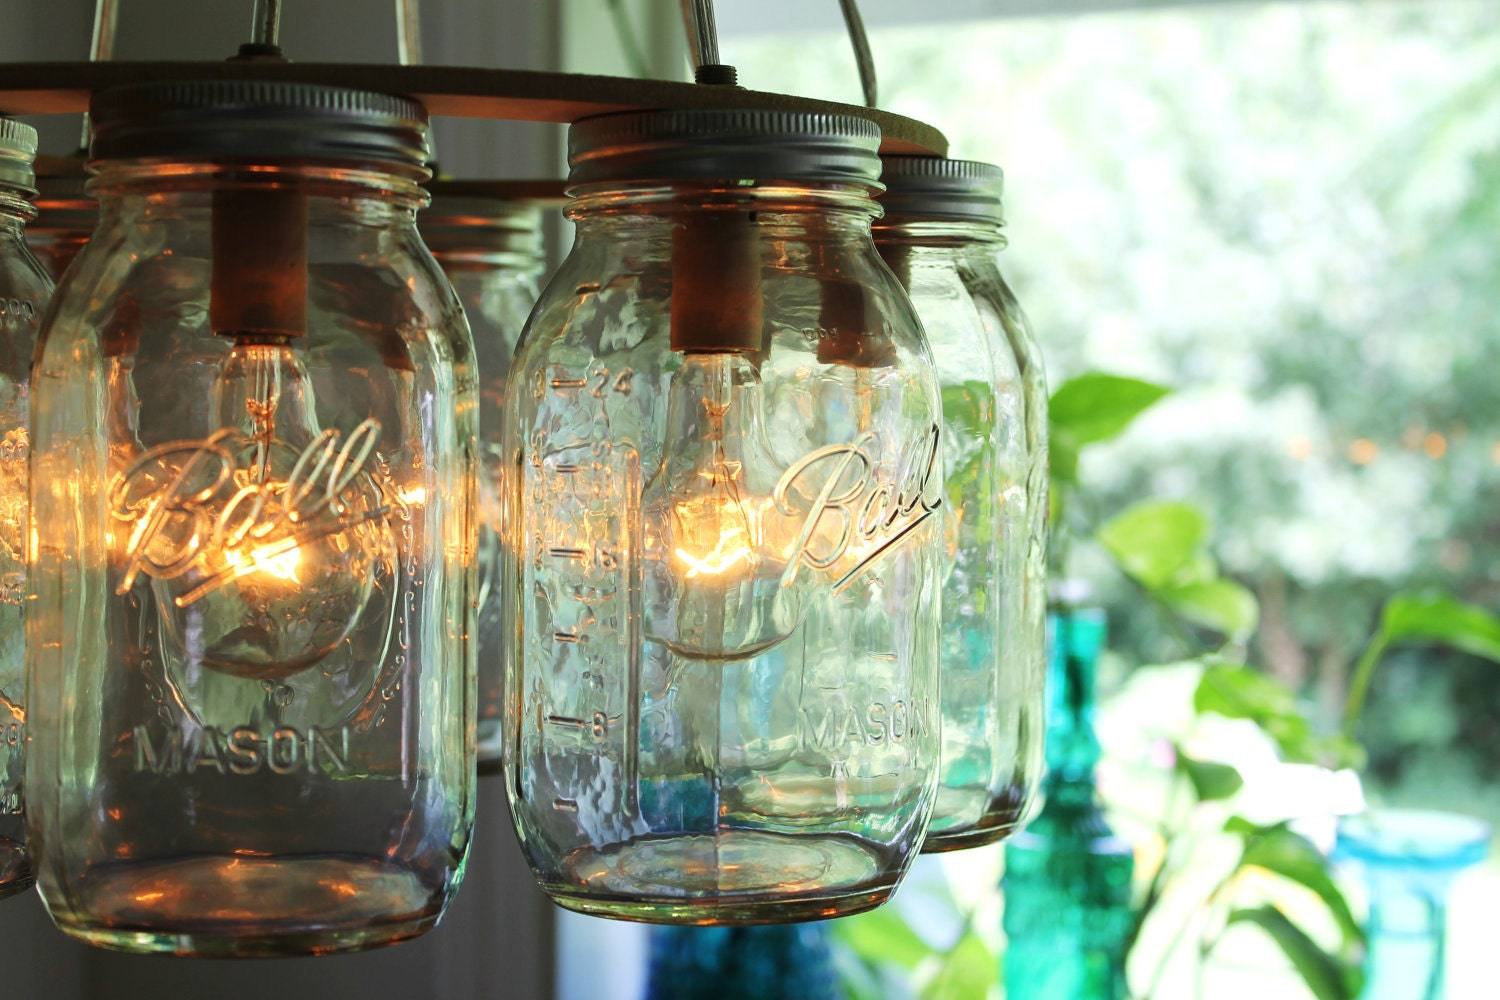 Beautifully rustic Mason Jar chandelier - featured on Momcaster.